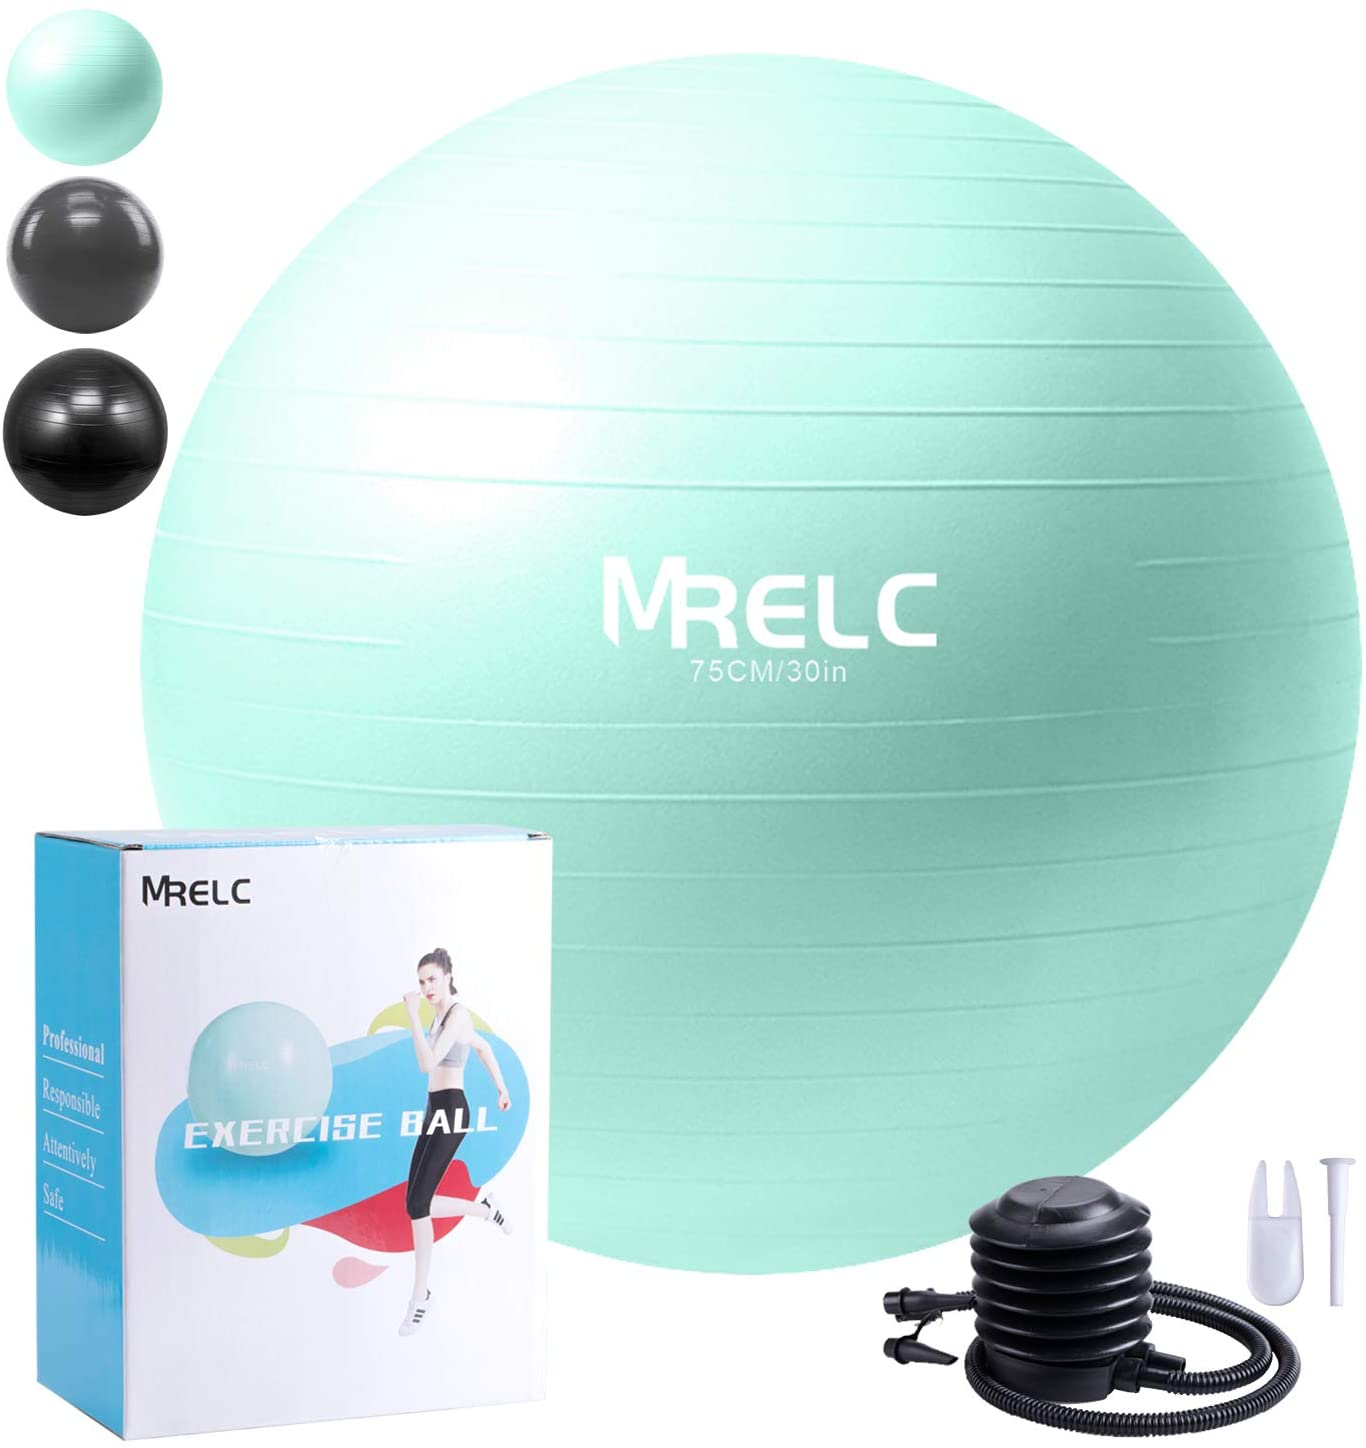 MRELC Exercise Ball Yoga Ball Fitness Ball Birthing Ball,(2200lbs Professional Grade Anti Burst Tested)£¬ Slip Resistant Stability Balance Ball for Fitness,Pilates & Yoga with Quick Pump